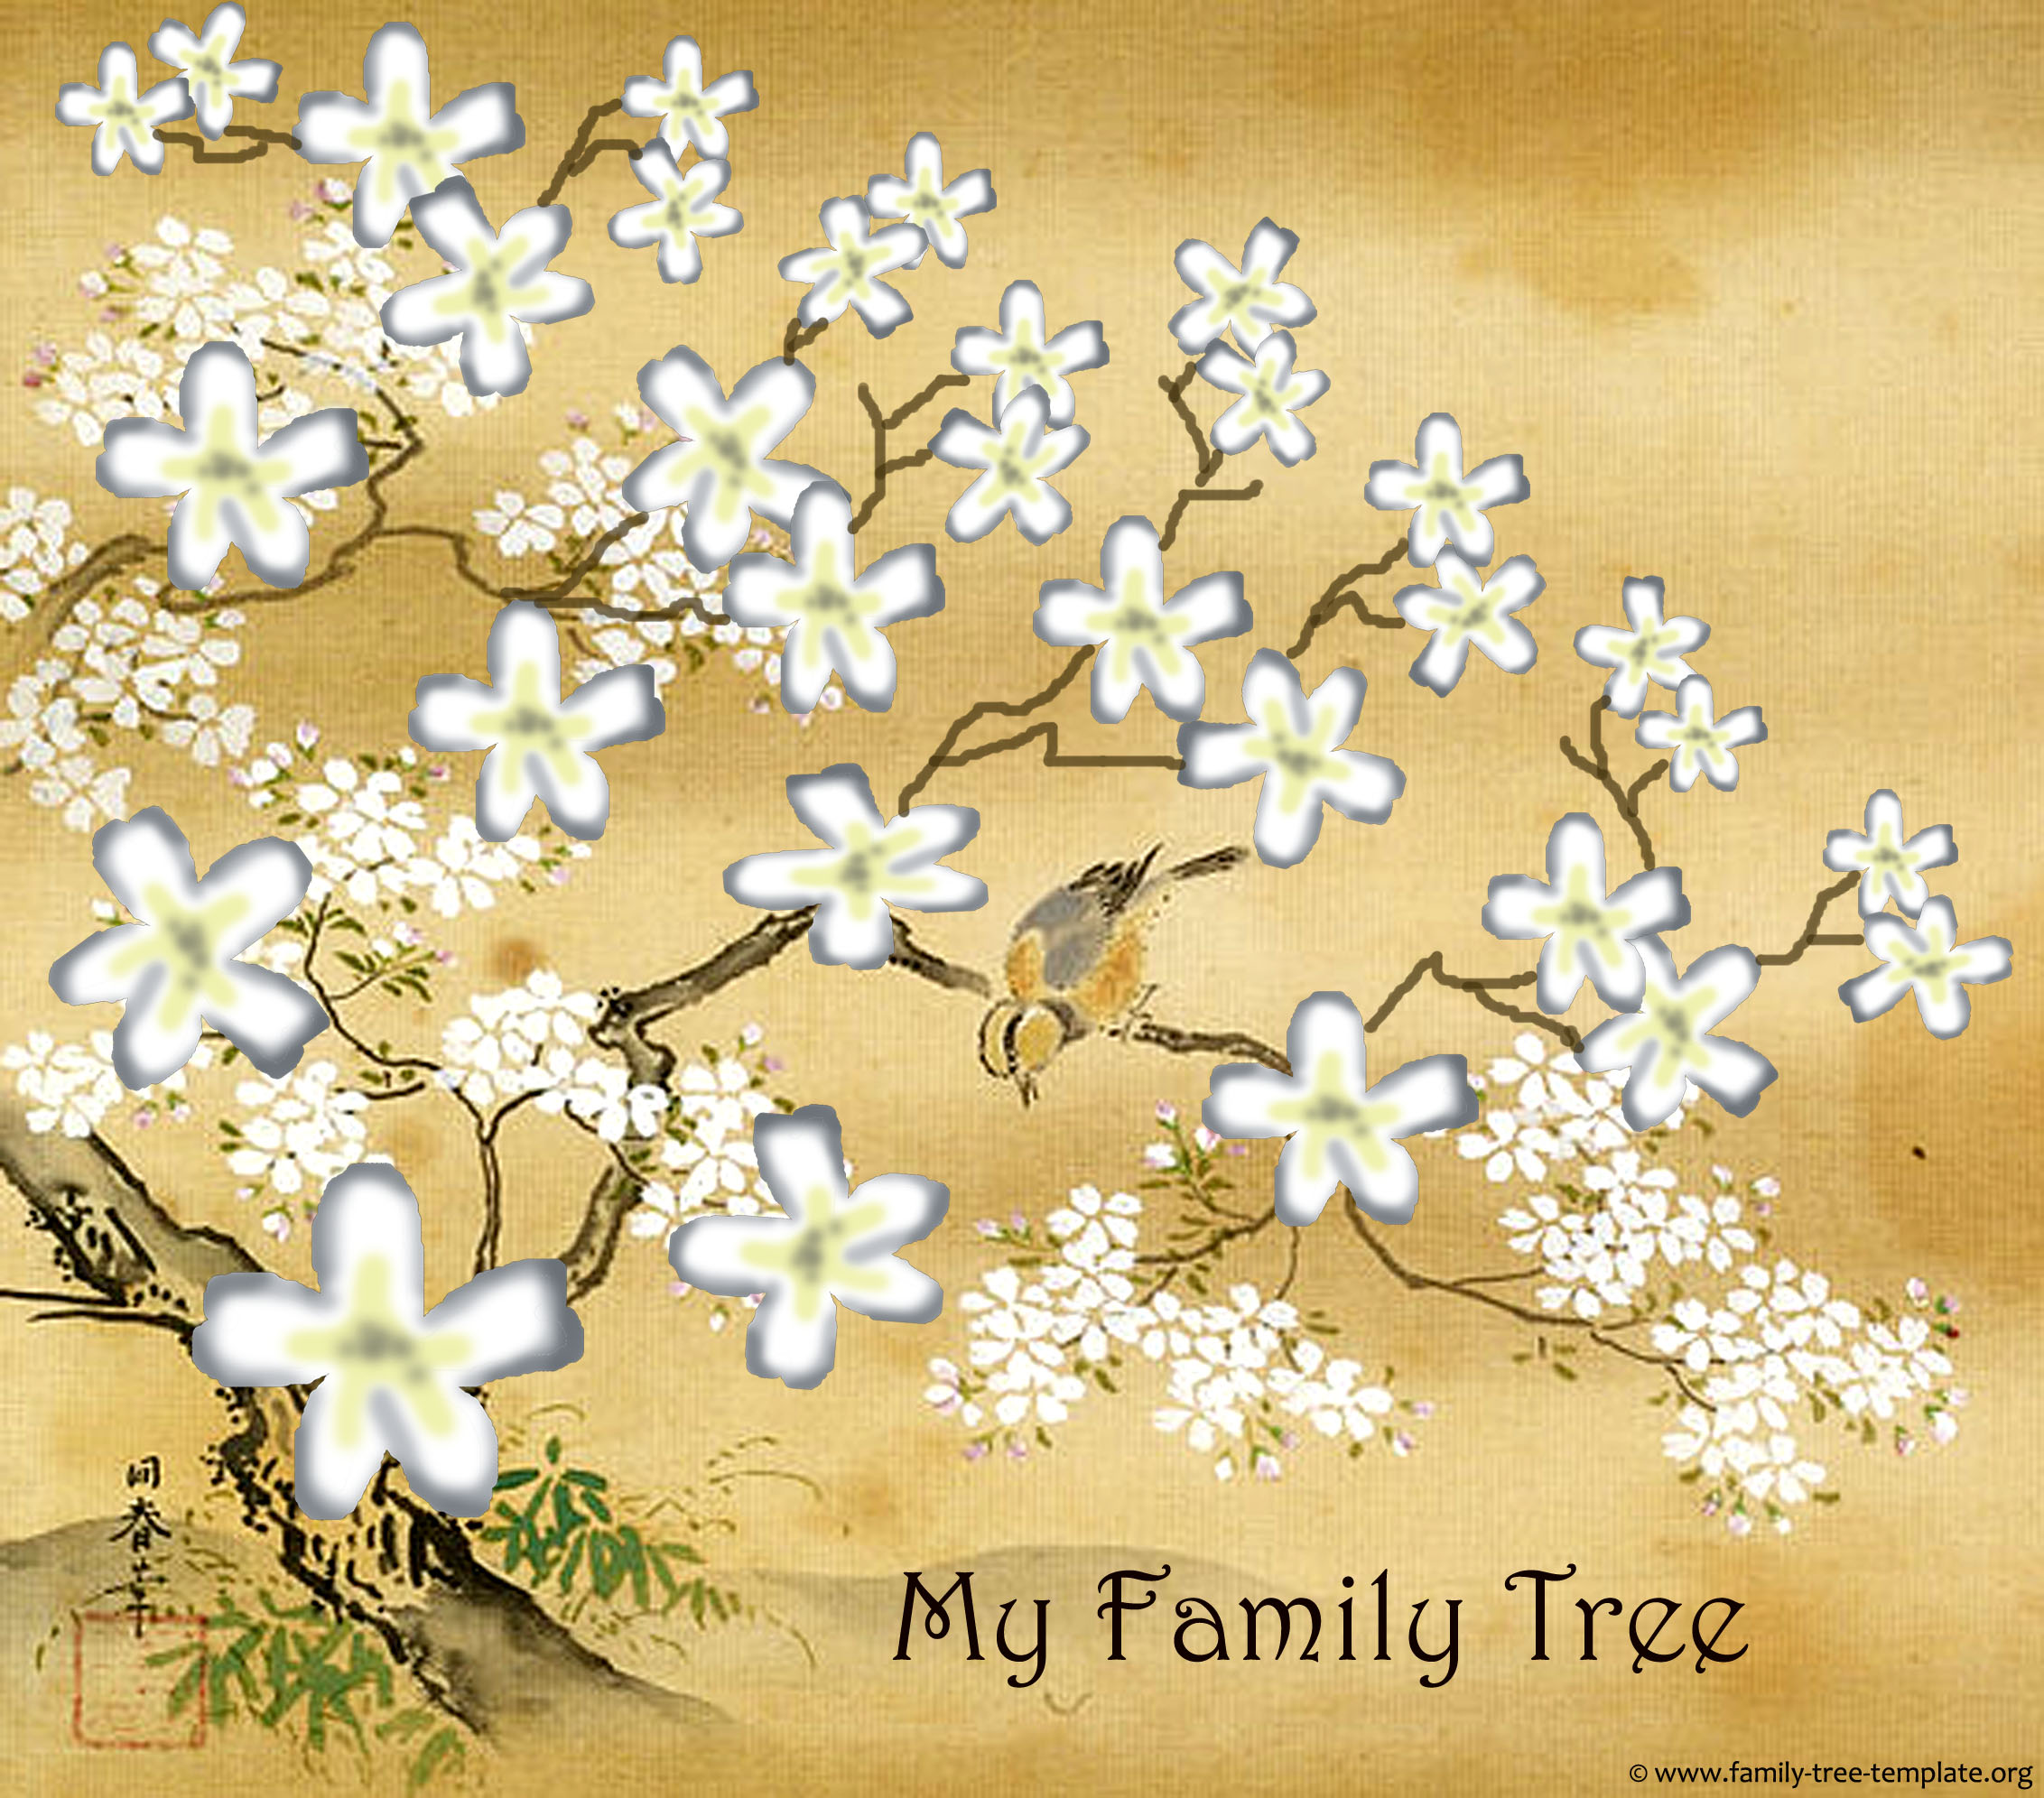 Family tree templates genealogy clipart for your ancestry map another printable 5 generations family tree chart japanese style toneelgroepblik Images